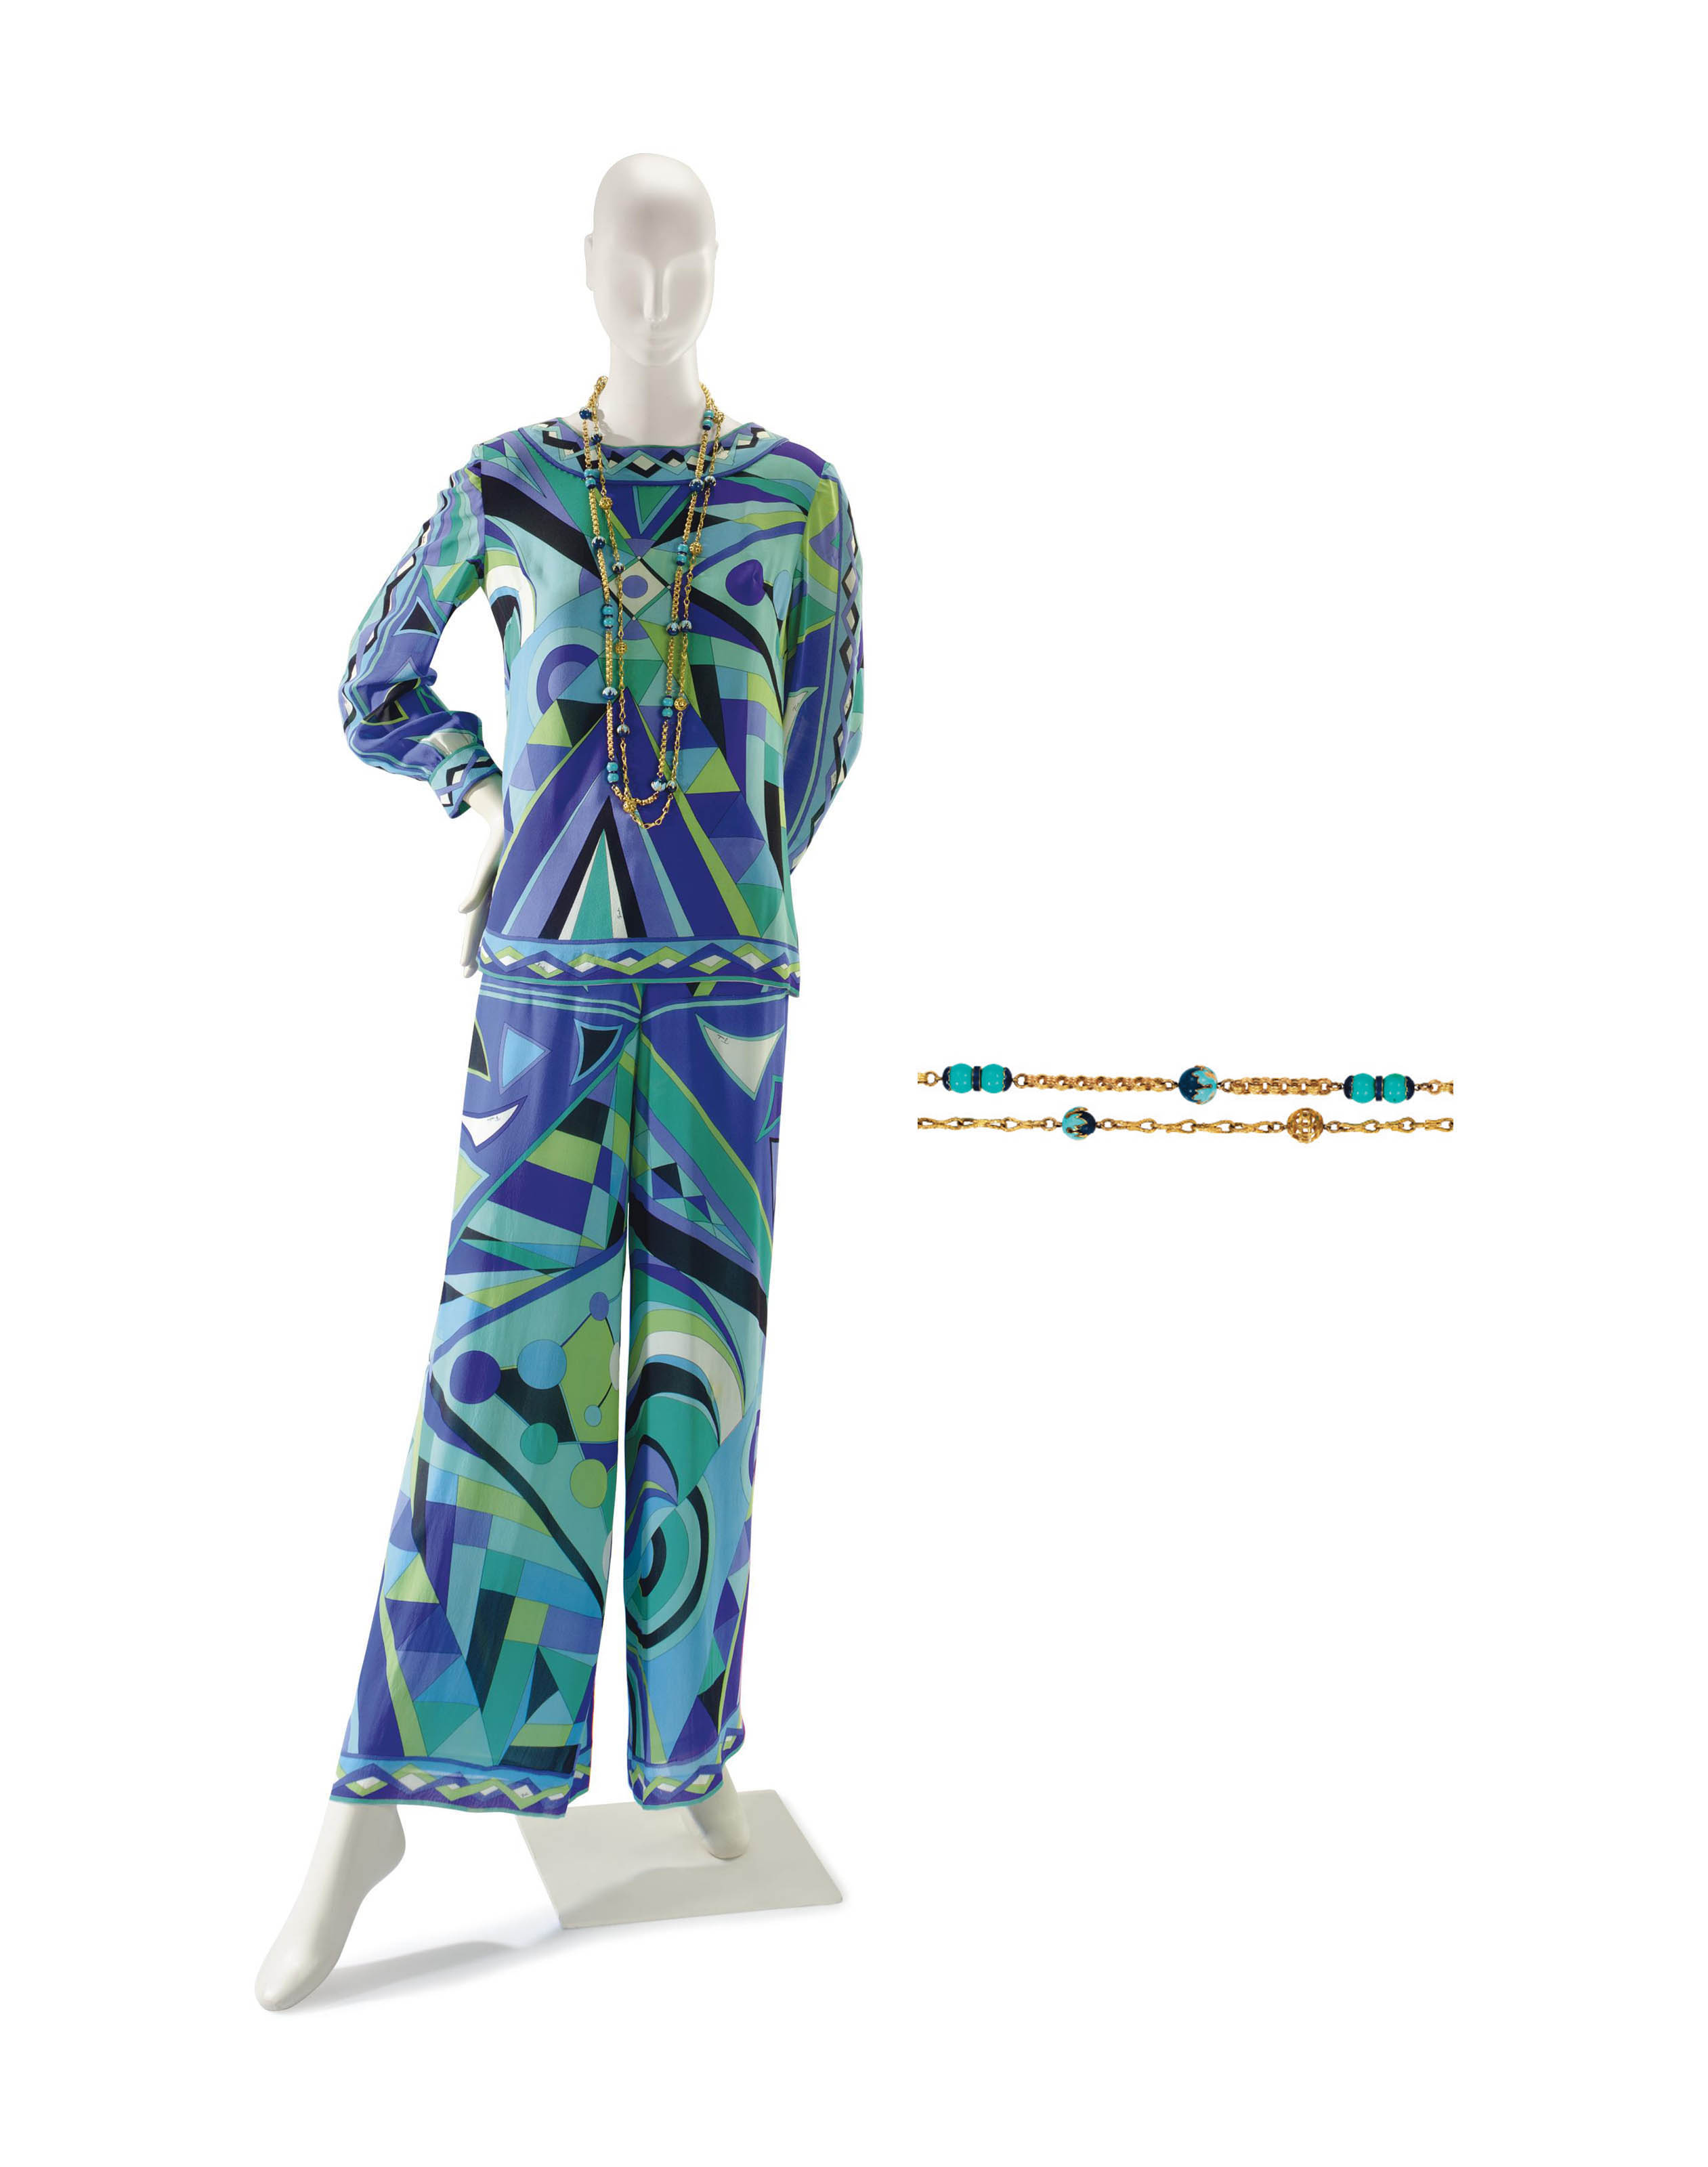 AN EMILIO PUCCI PURPLE, BLUE AND GREEN PRINT SILK ENSEMBLE WITH TWO BEADED SAUTOIRS